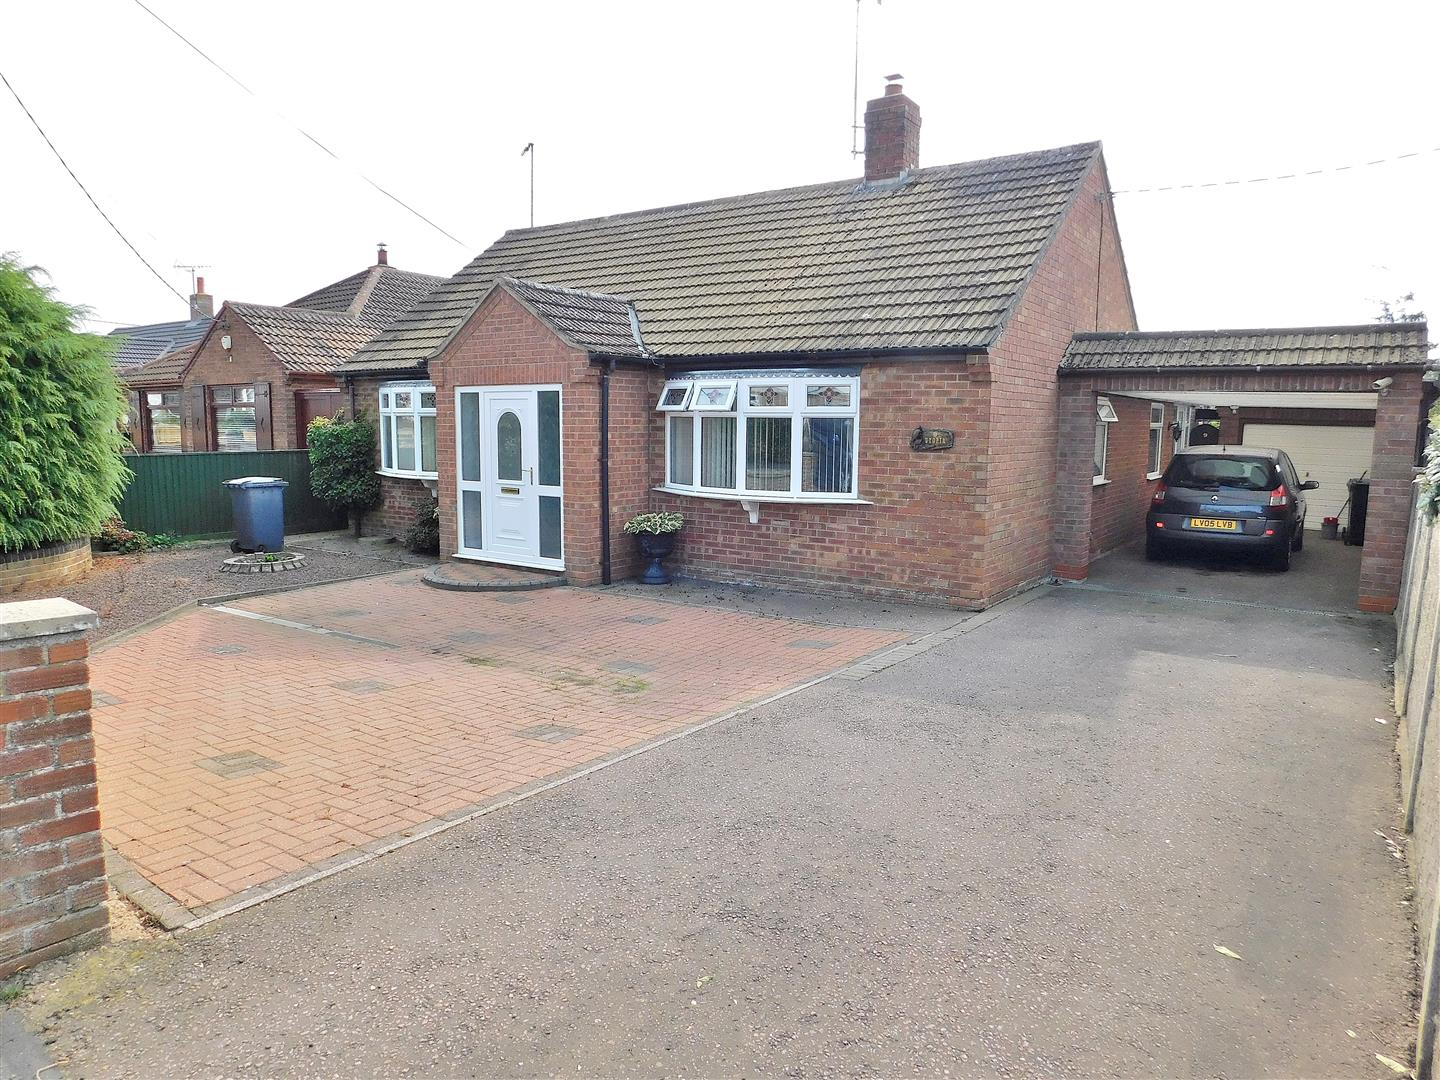 3 bed detached bungalow for sale in King's Lynn, PE33 0QG, PE33